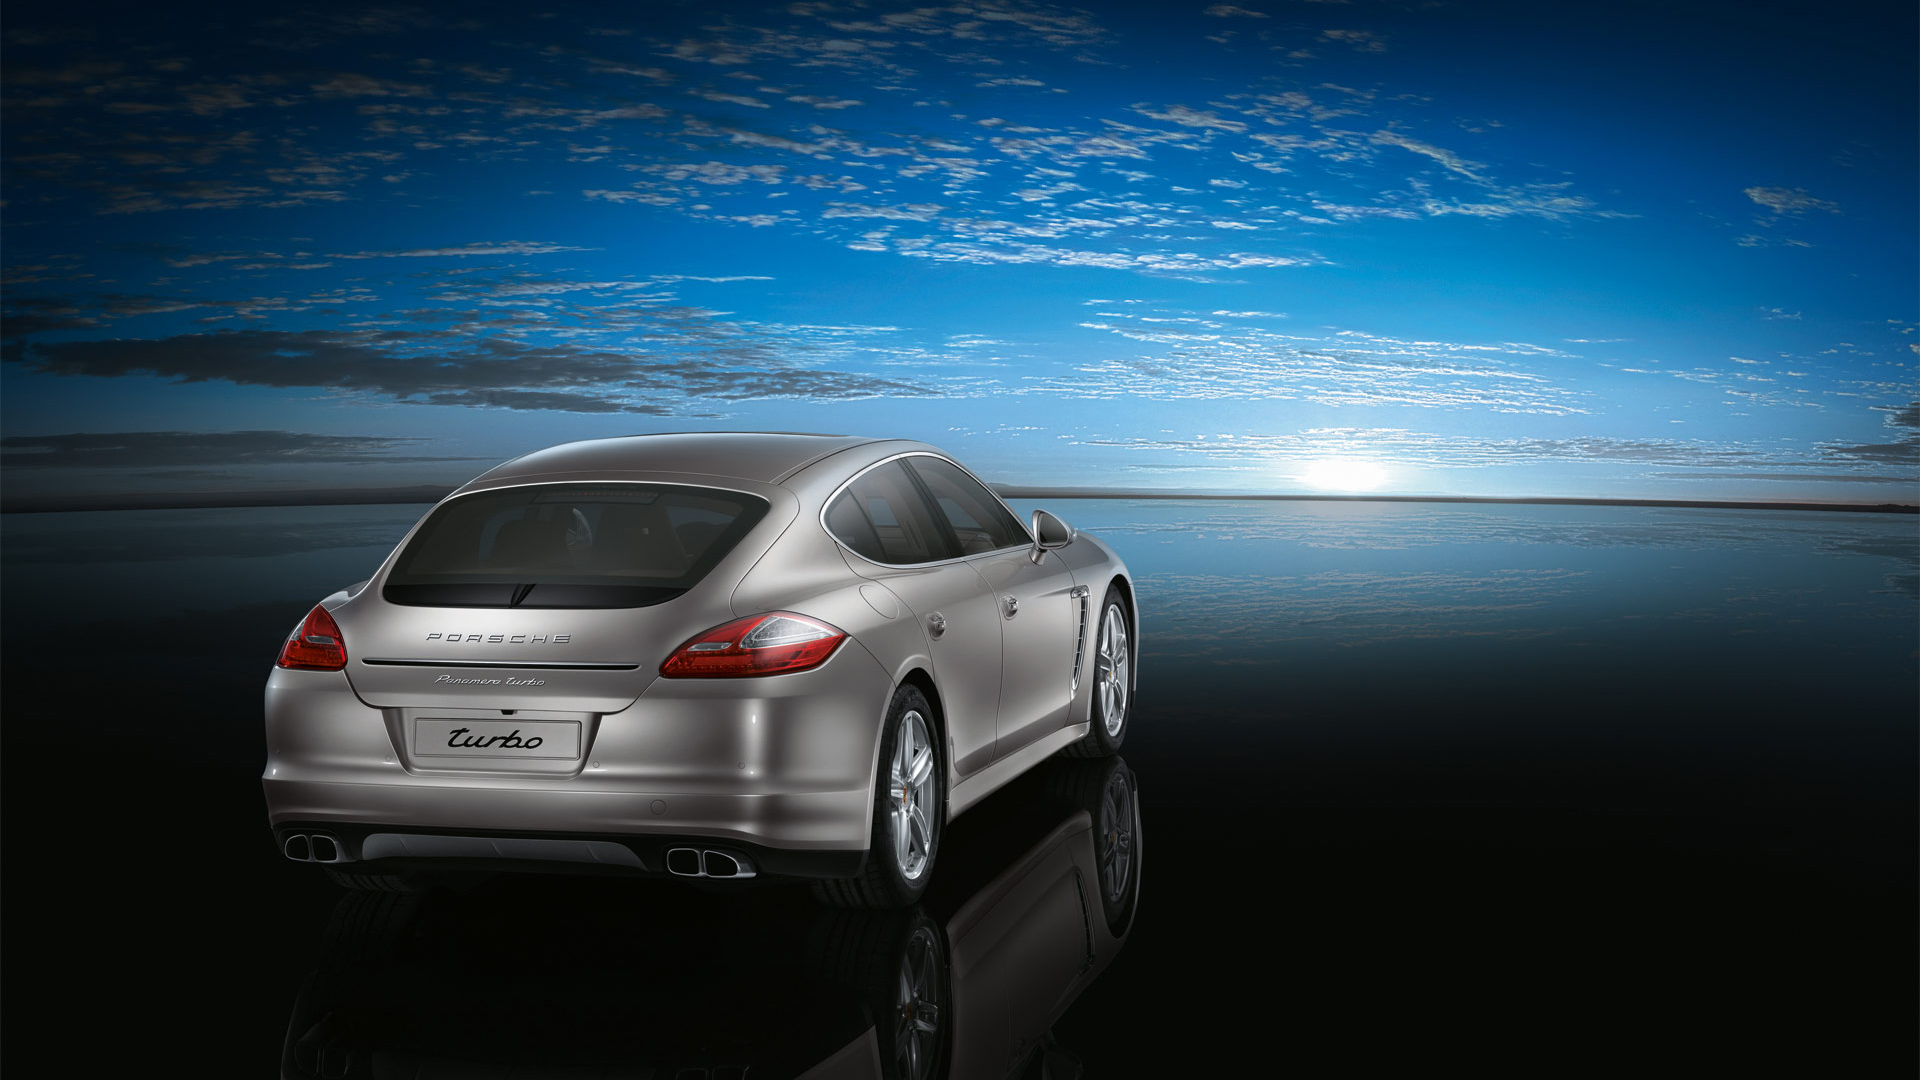 Porsche Panamera Turbo 2 594.24 Kb